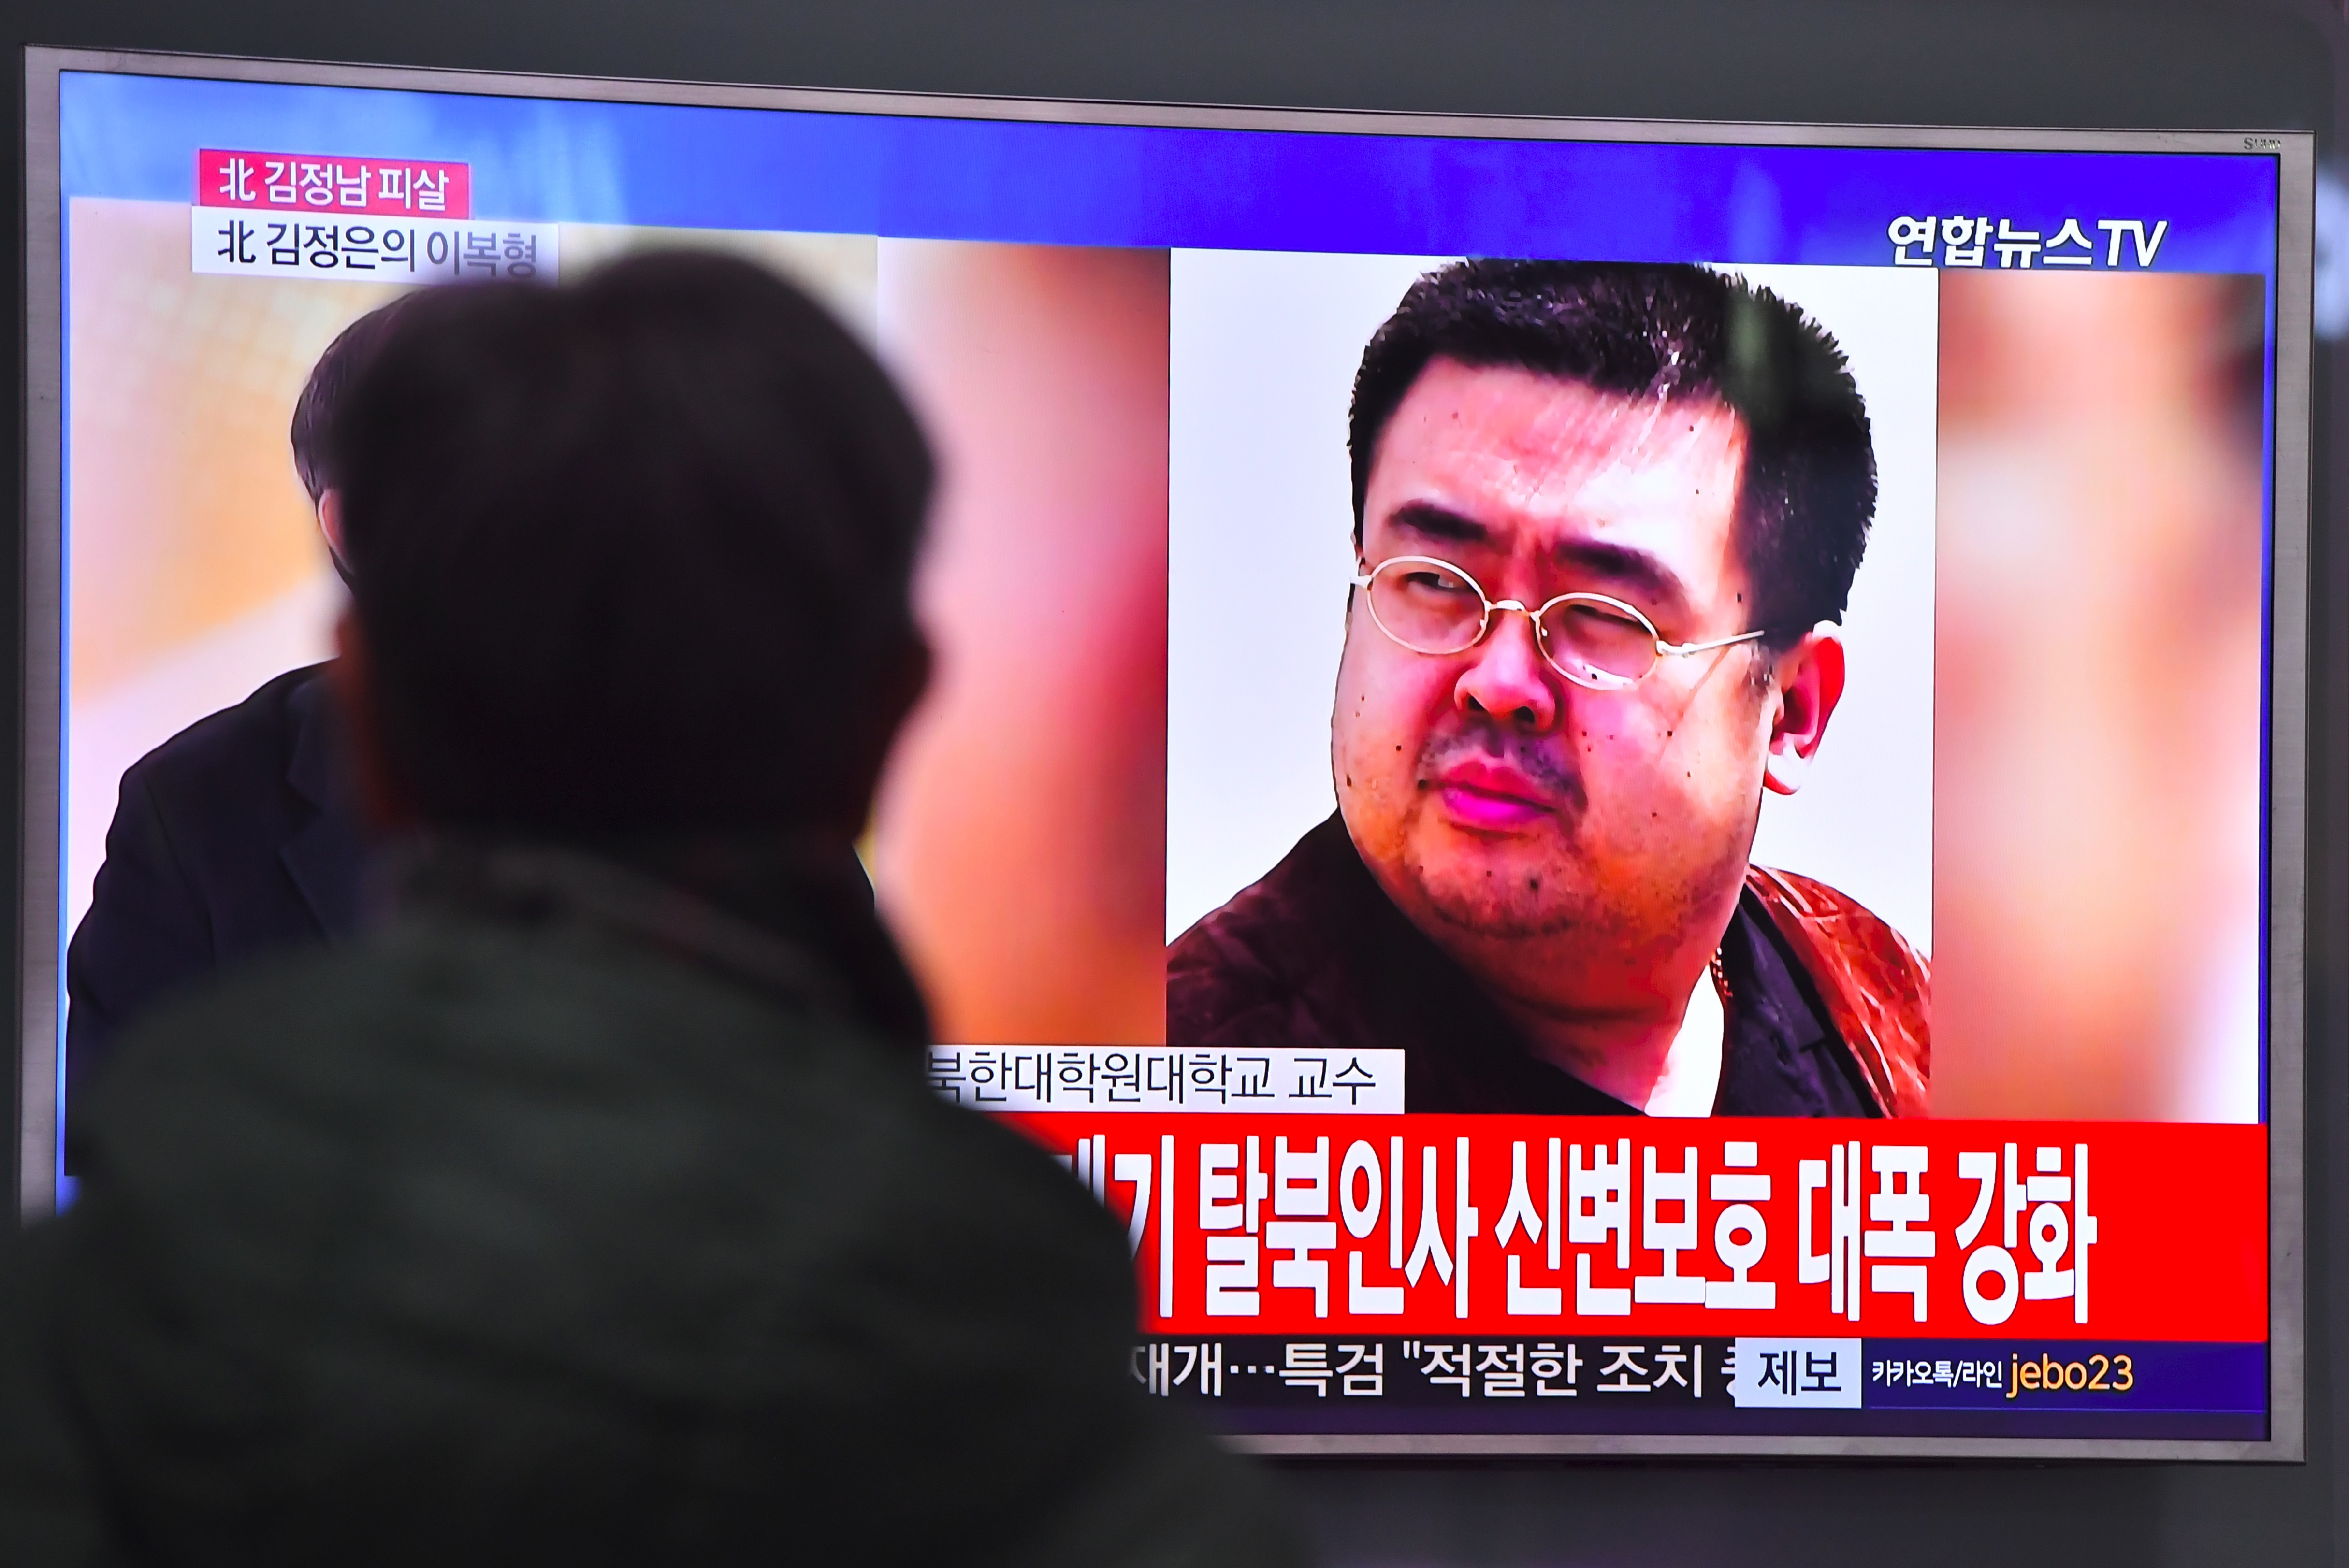 A news reports of Kim Jong-Nam, the half-brother of North Korean leader Kim Jong-Un, in Seoul on Feb. 14, 2017.